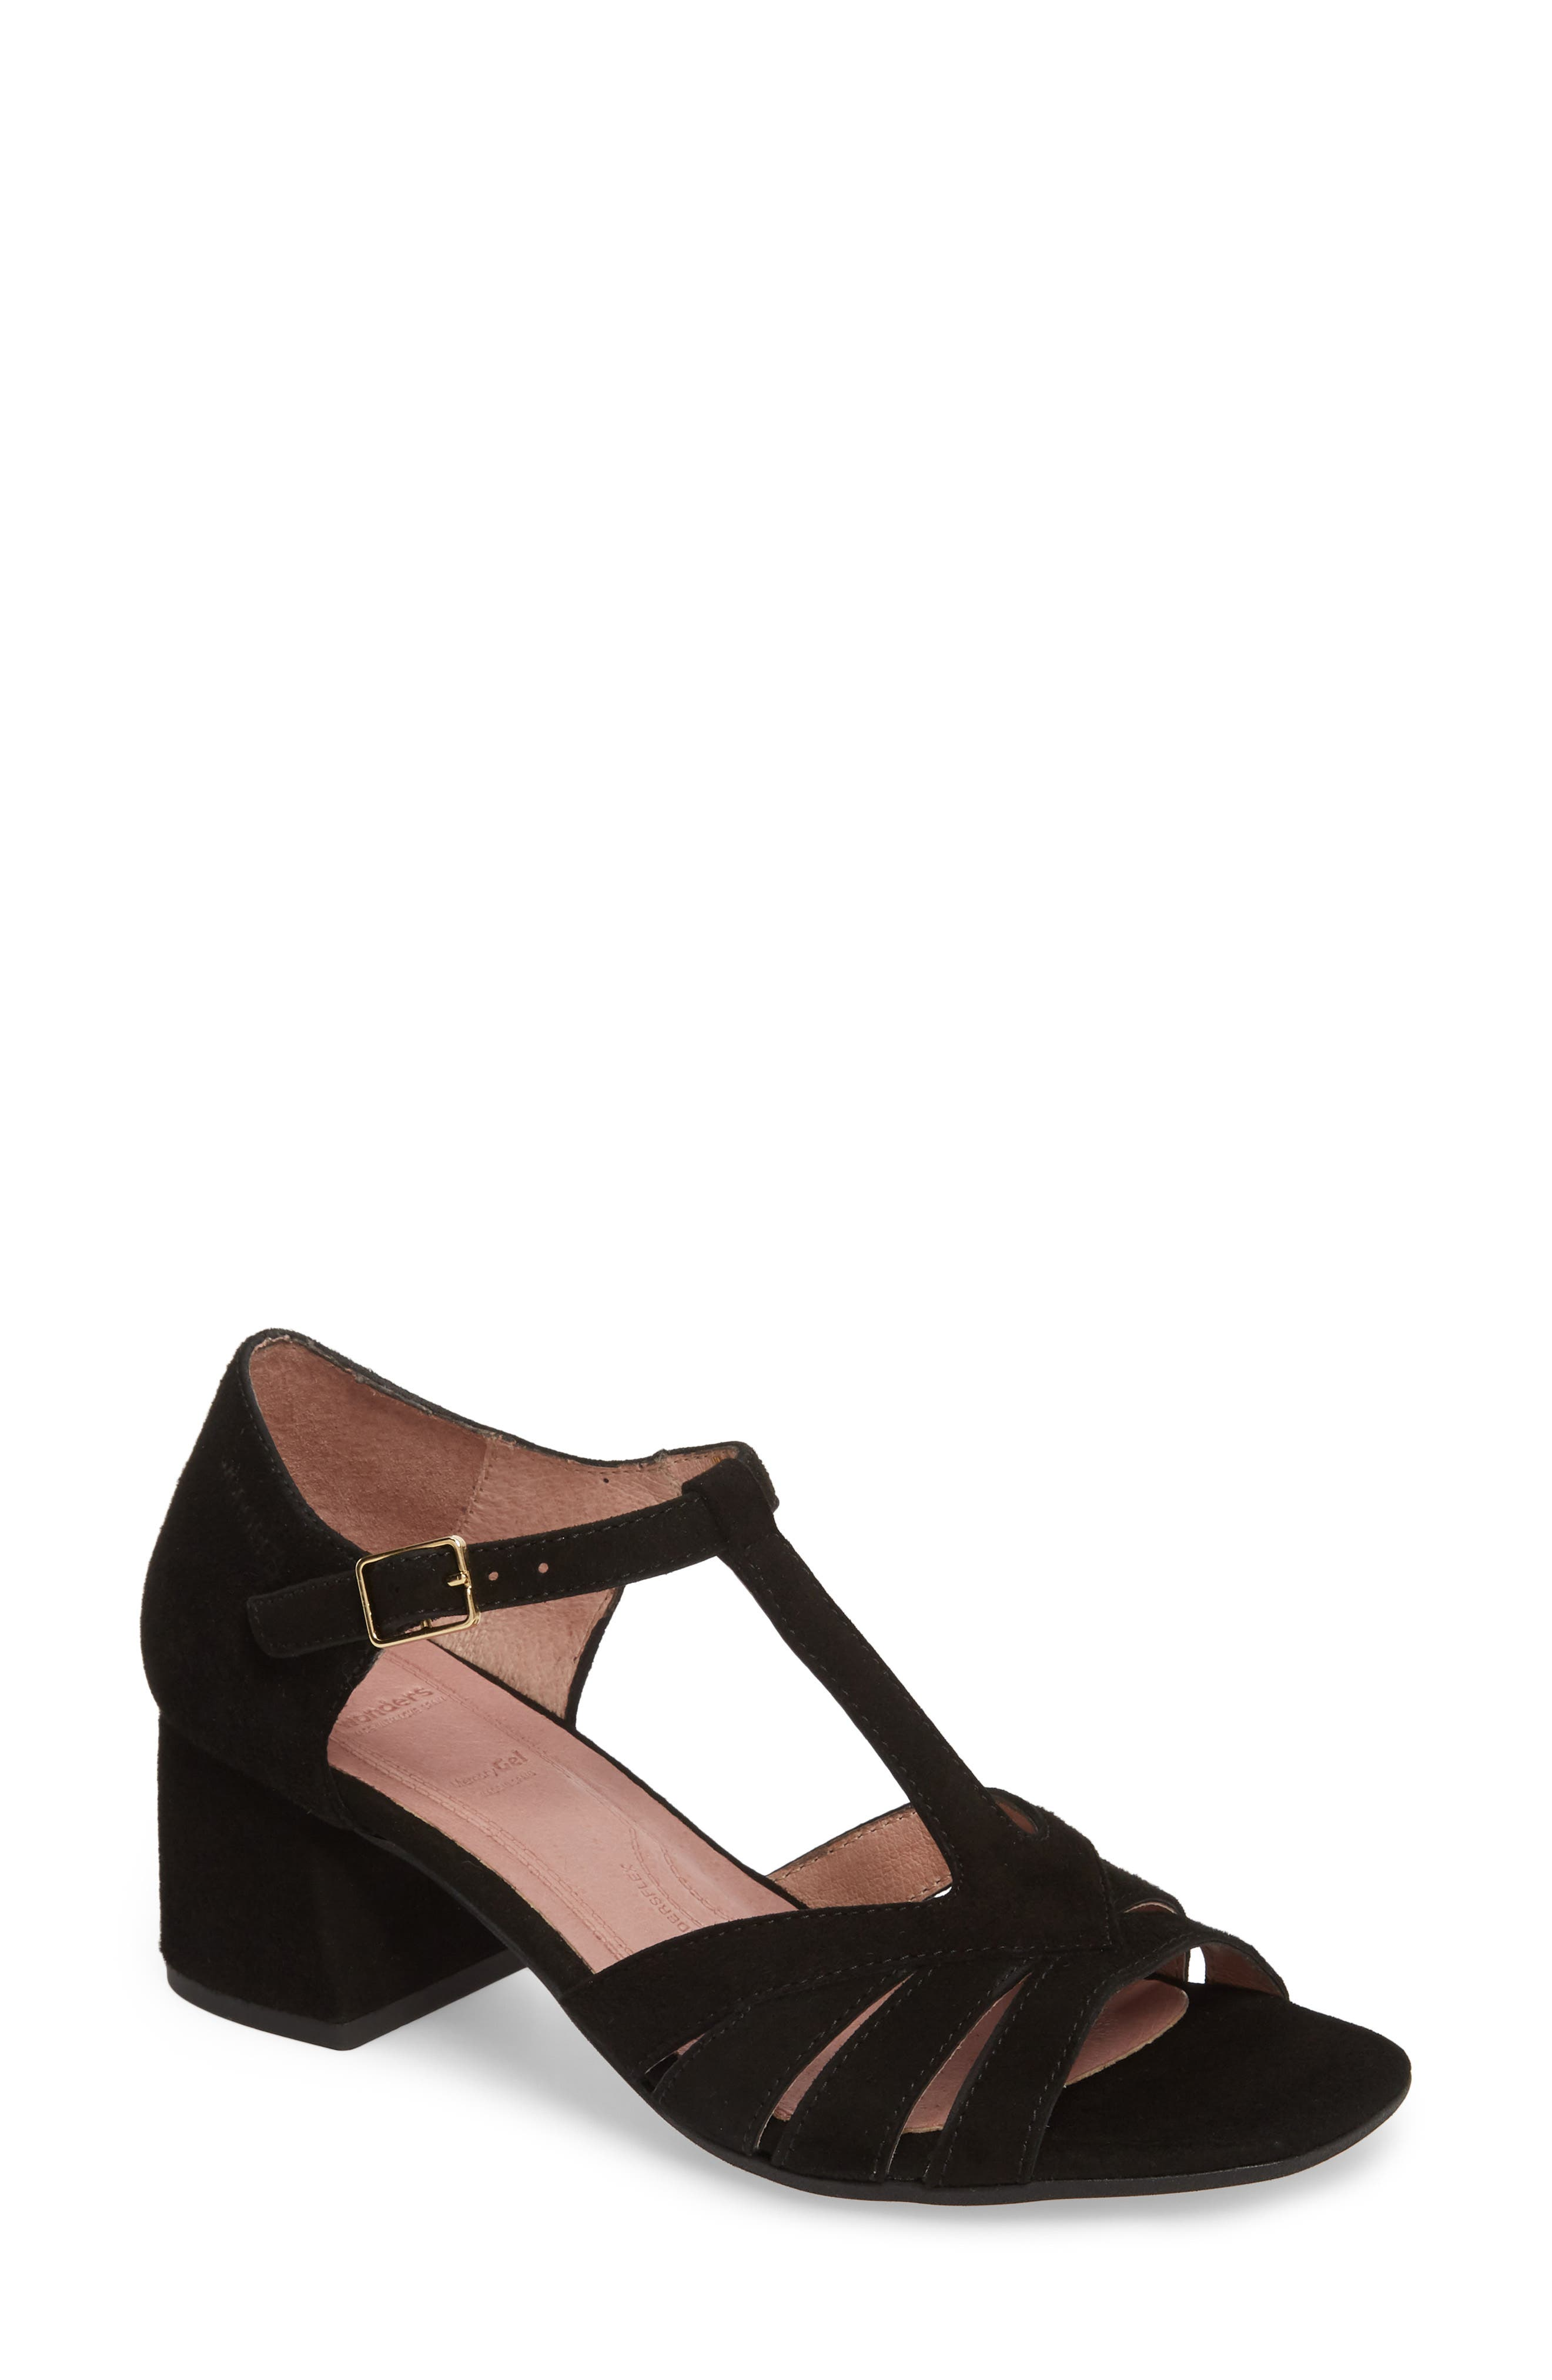 Wonders Block Heel Sandal - Black